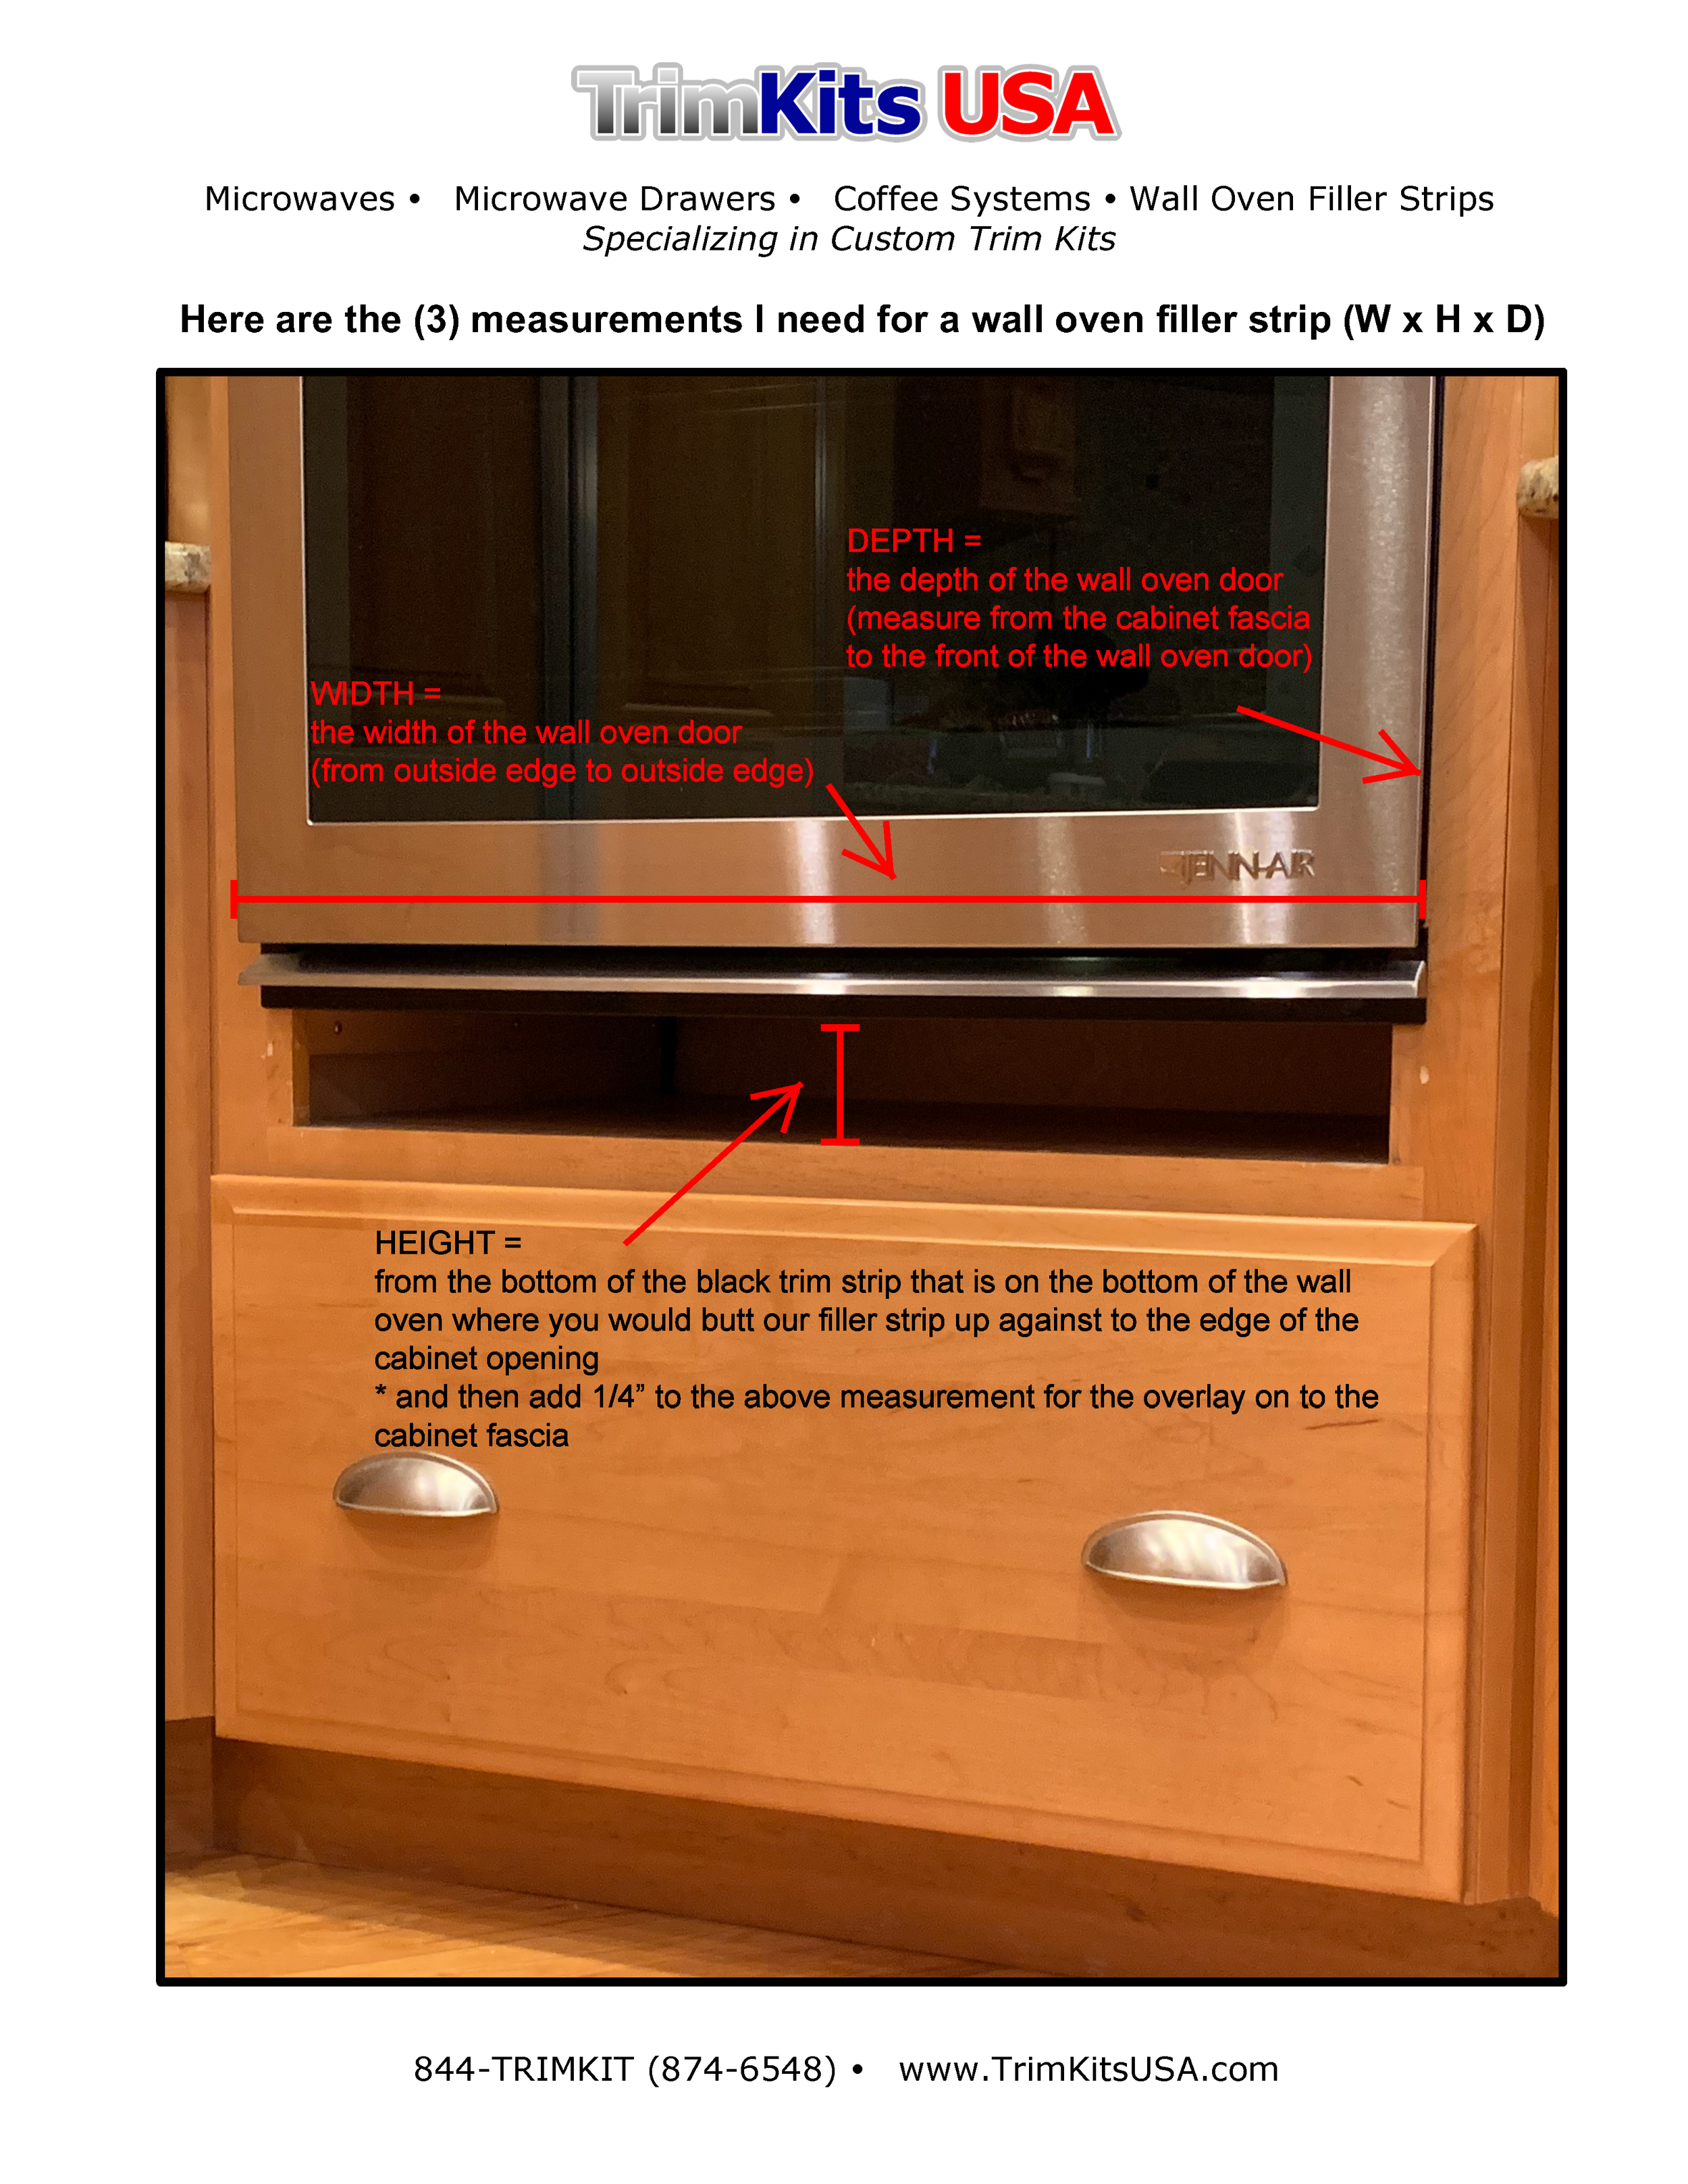 TKUSA Wall Oven Filler Strip Measurements on Letterhead.png